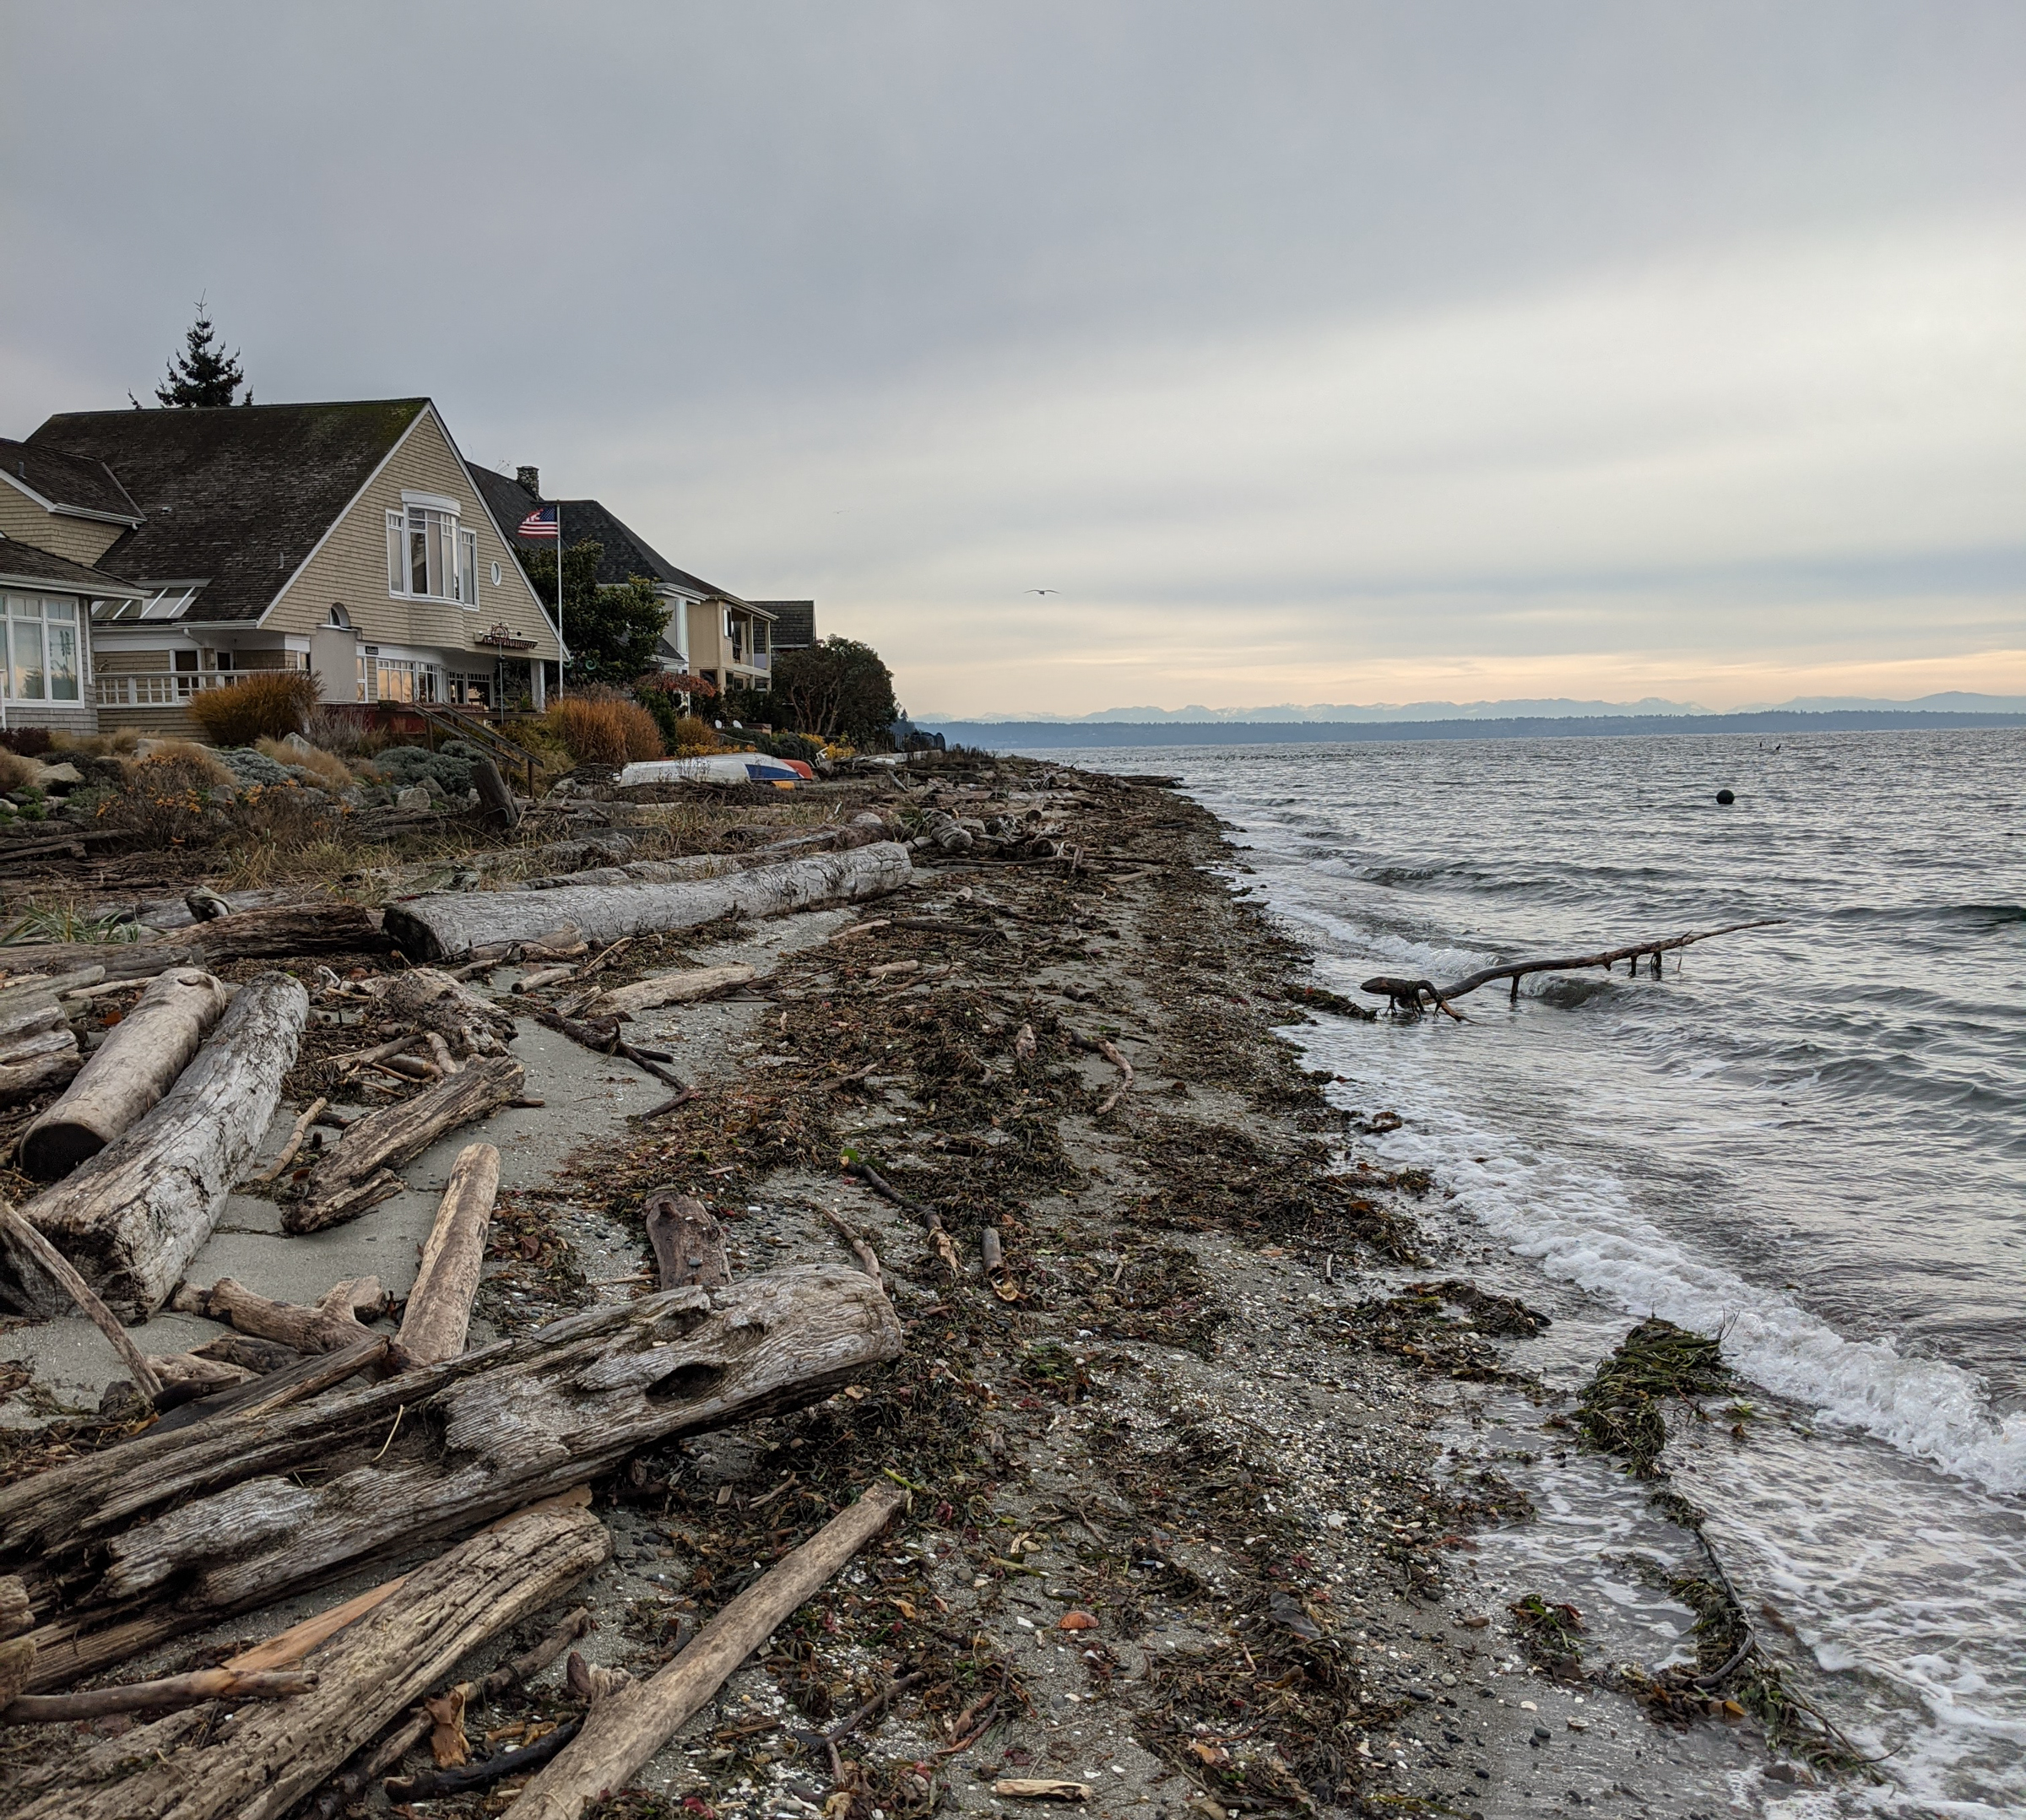 A winter beach scene in the pacific northwest with high tide washing seaweed onto the beach.